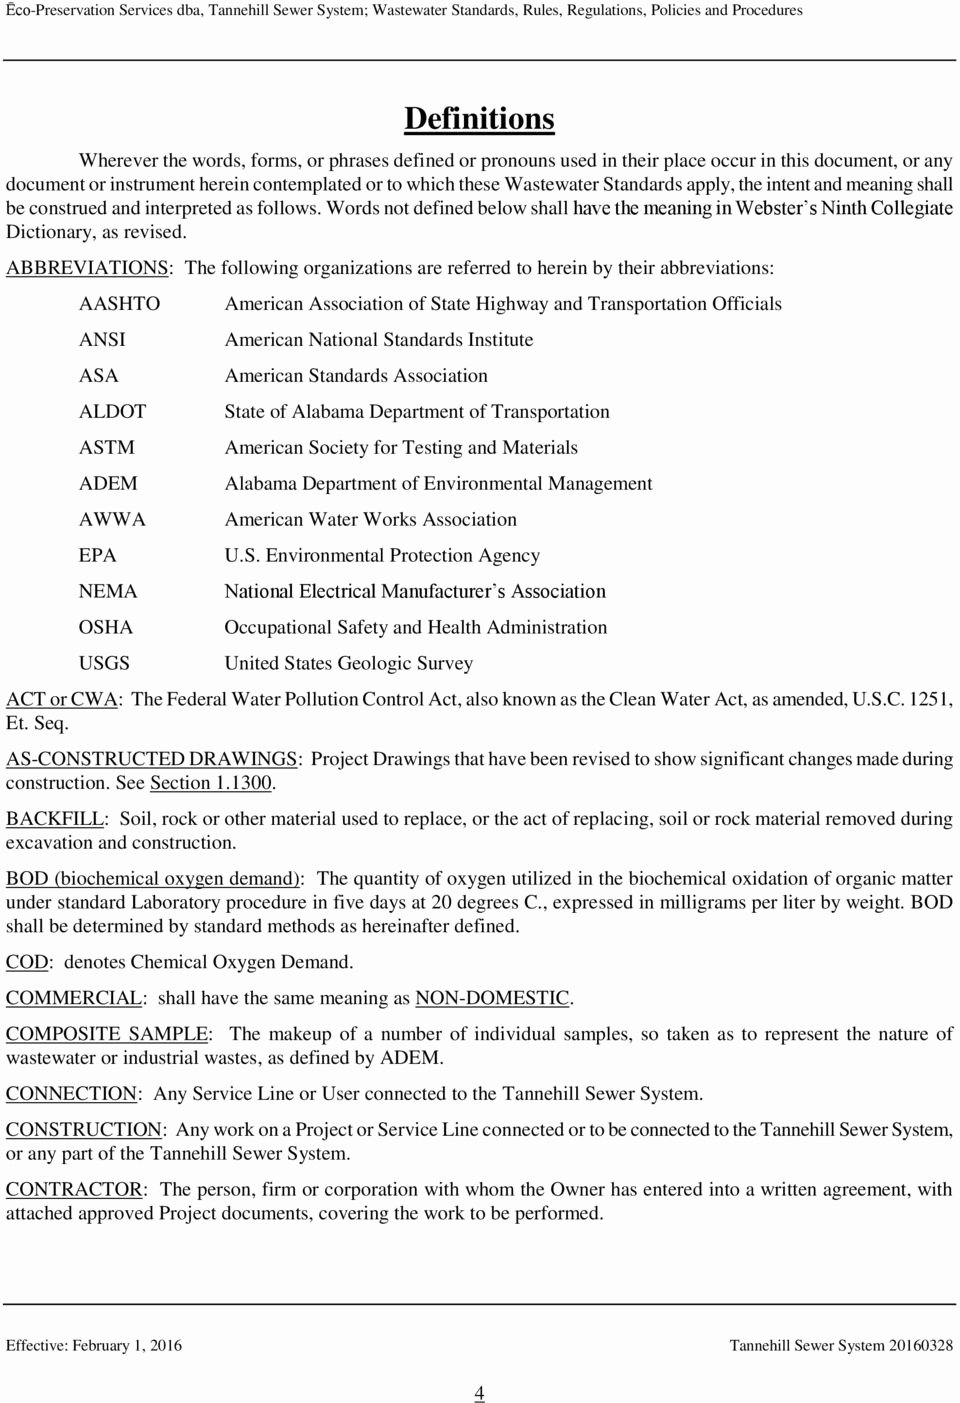 Sample Utility Easement Agreement Awesome ēco Preservation Services Pdf